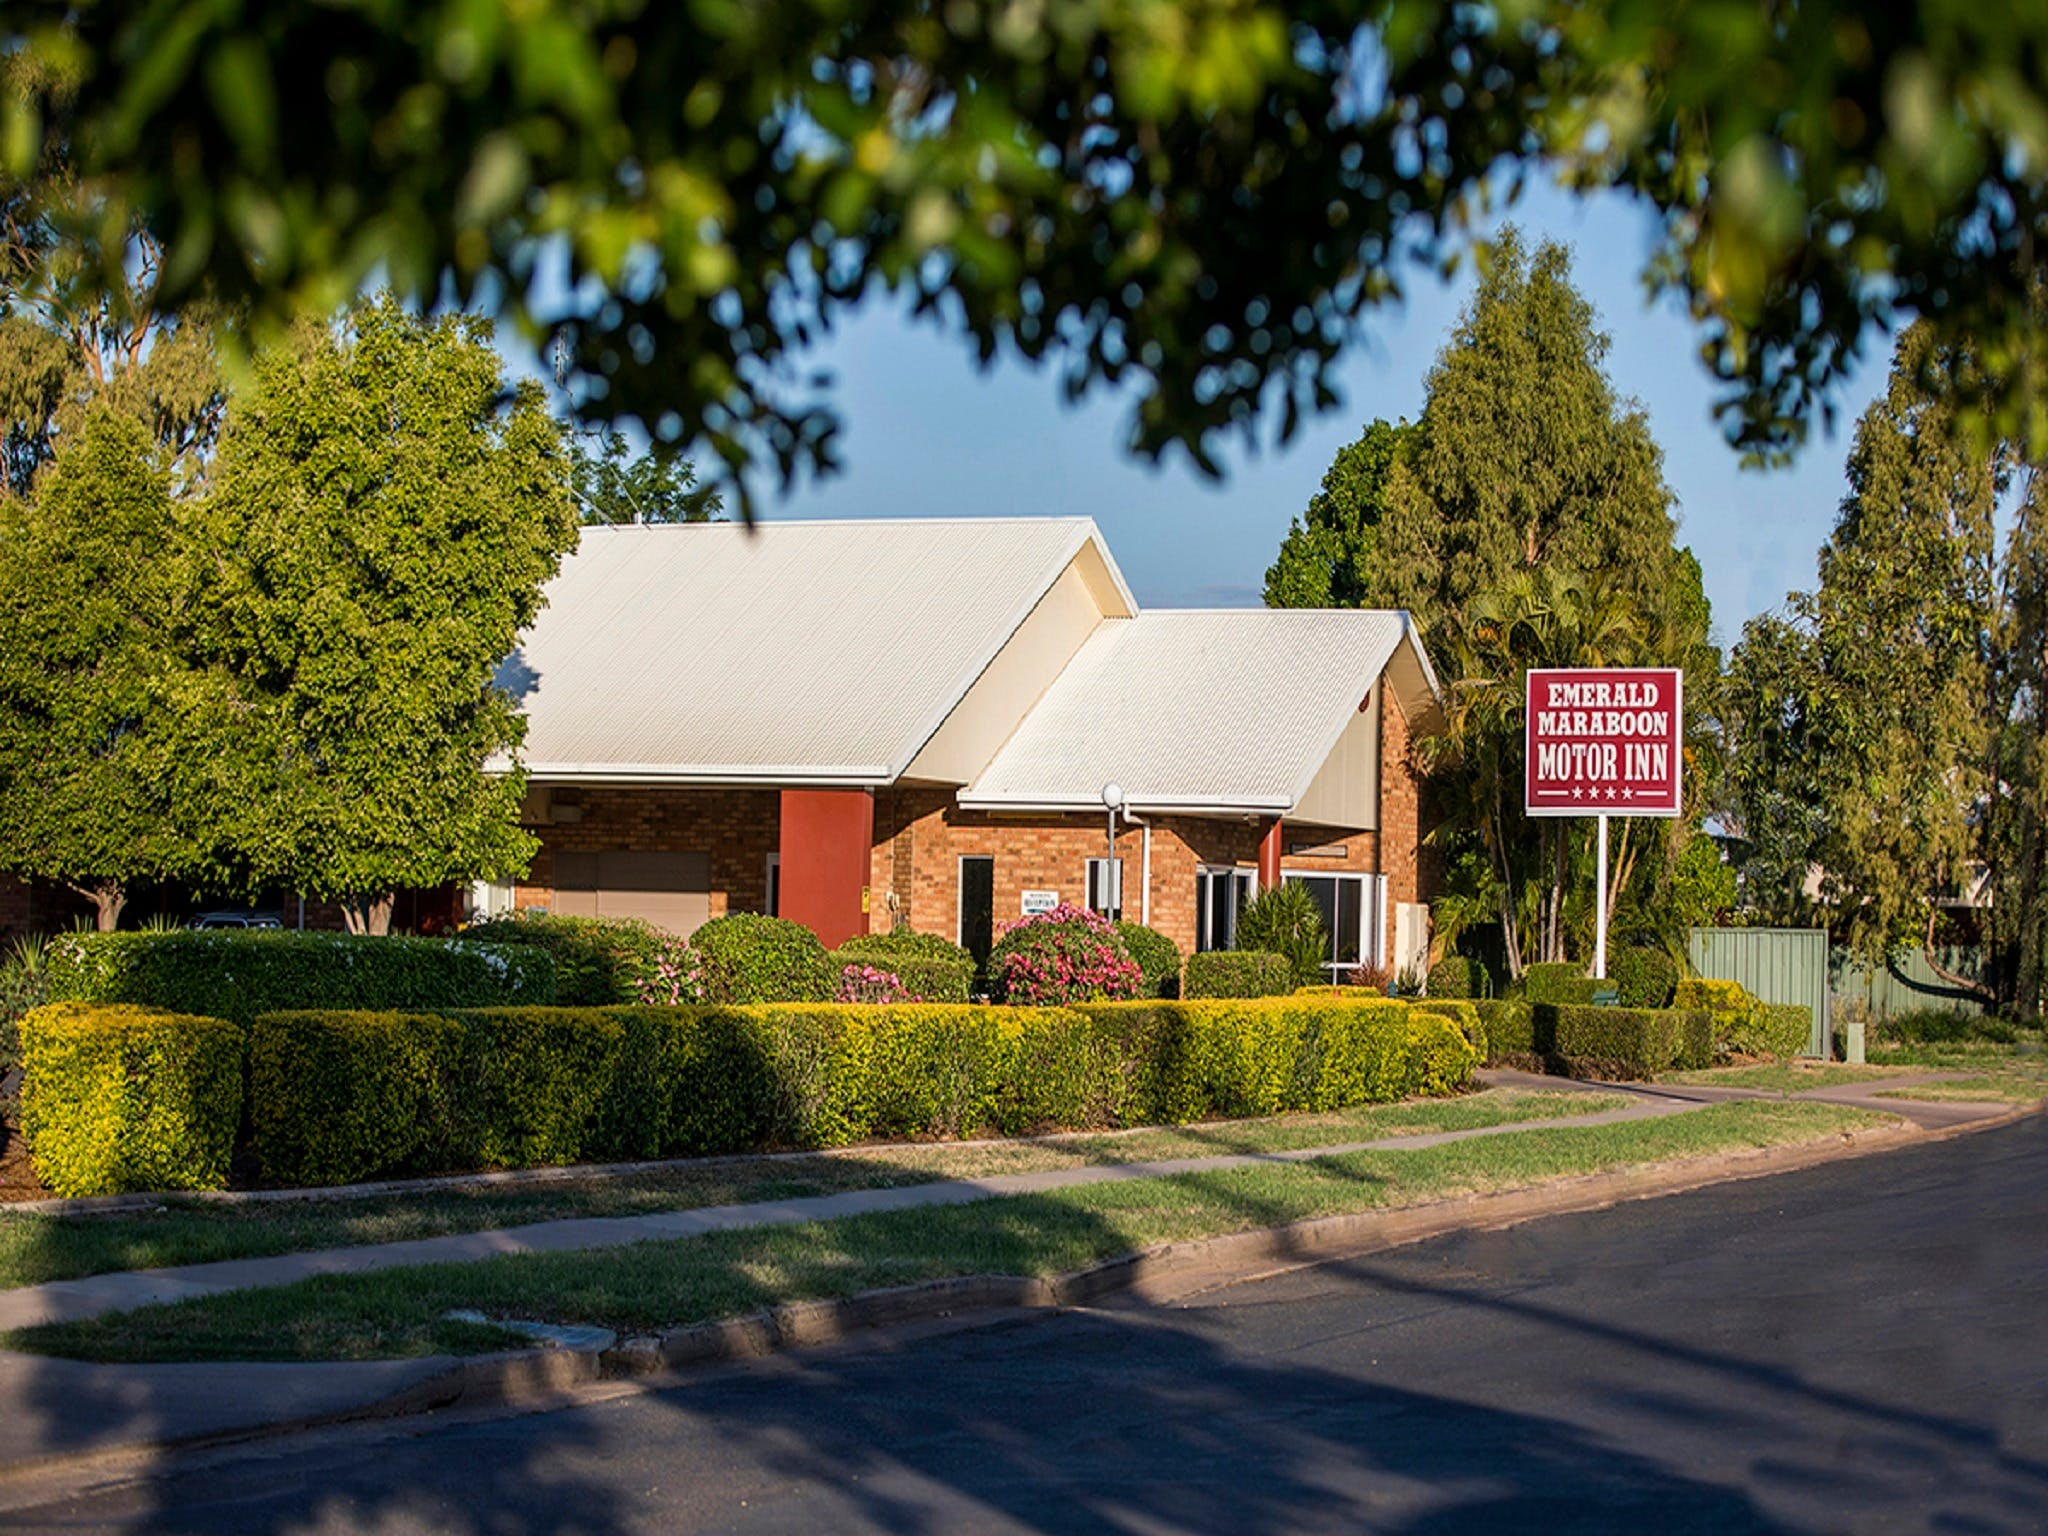 Emerald Maraboon Motor Inn - Lismore Accommodation